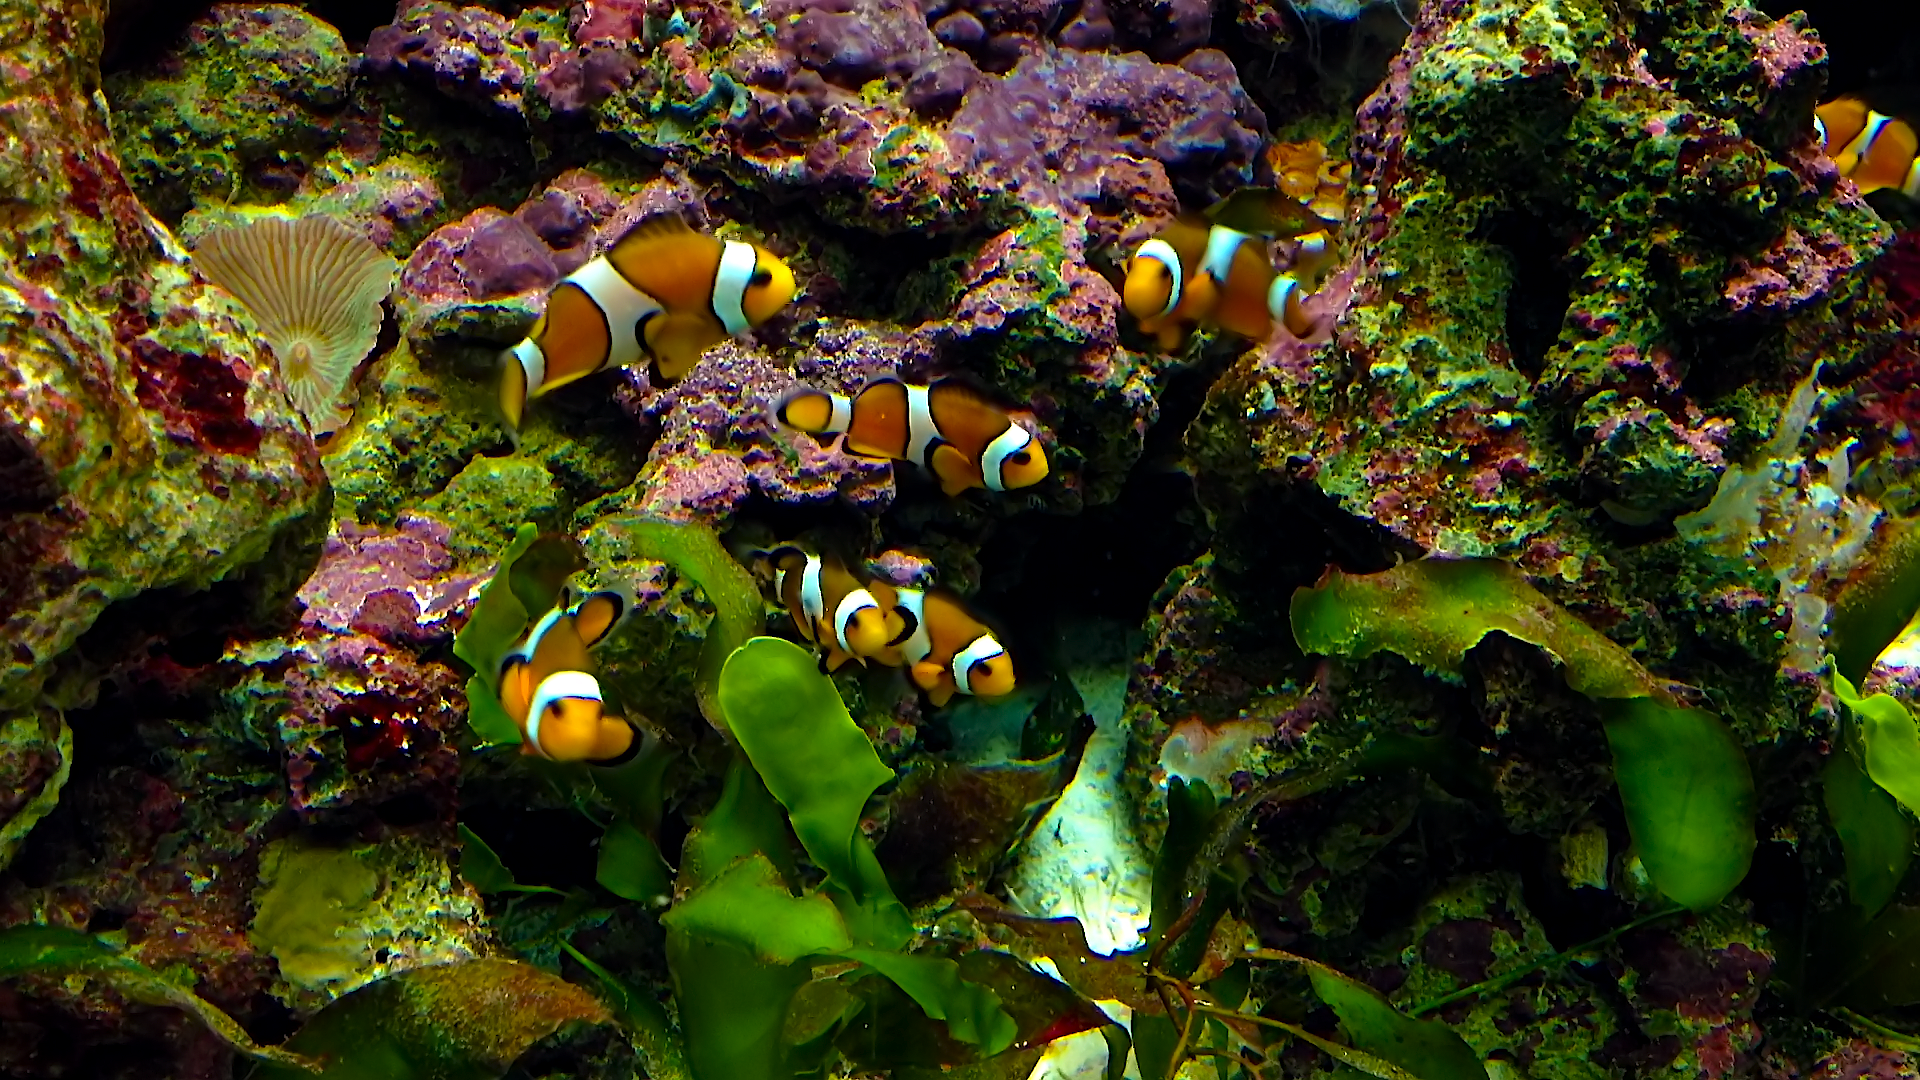 Aquarium live HD TV: Coral reef scenes with relaxing nature & ocean sounds for stress relief screenshot 2